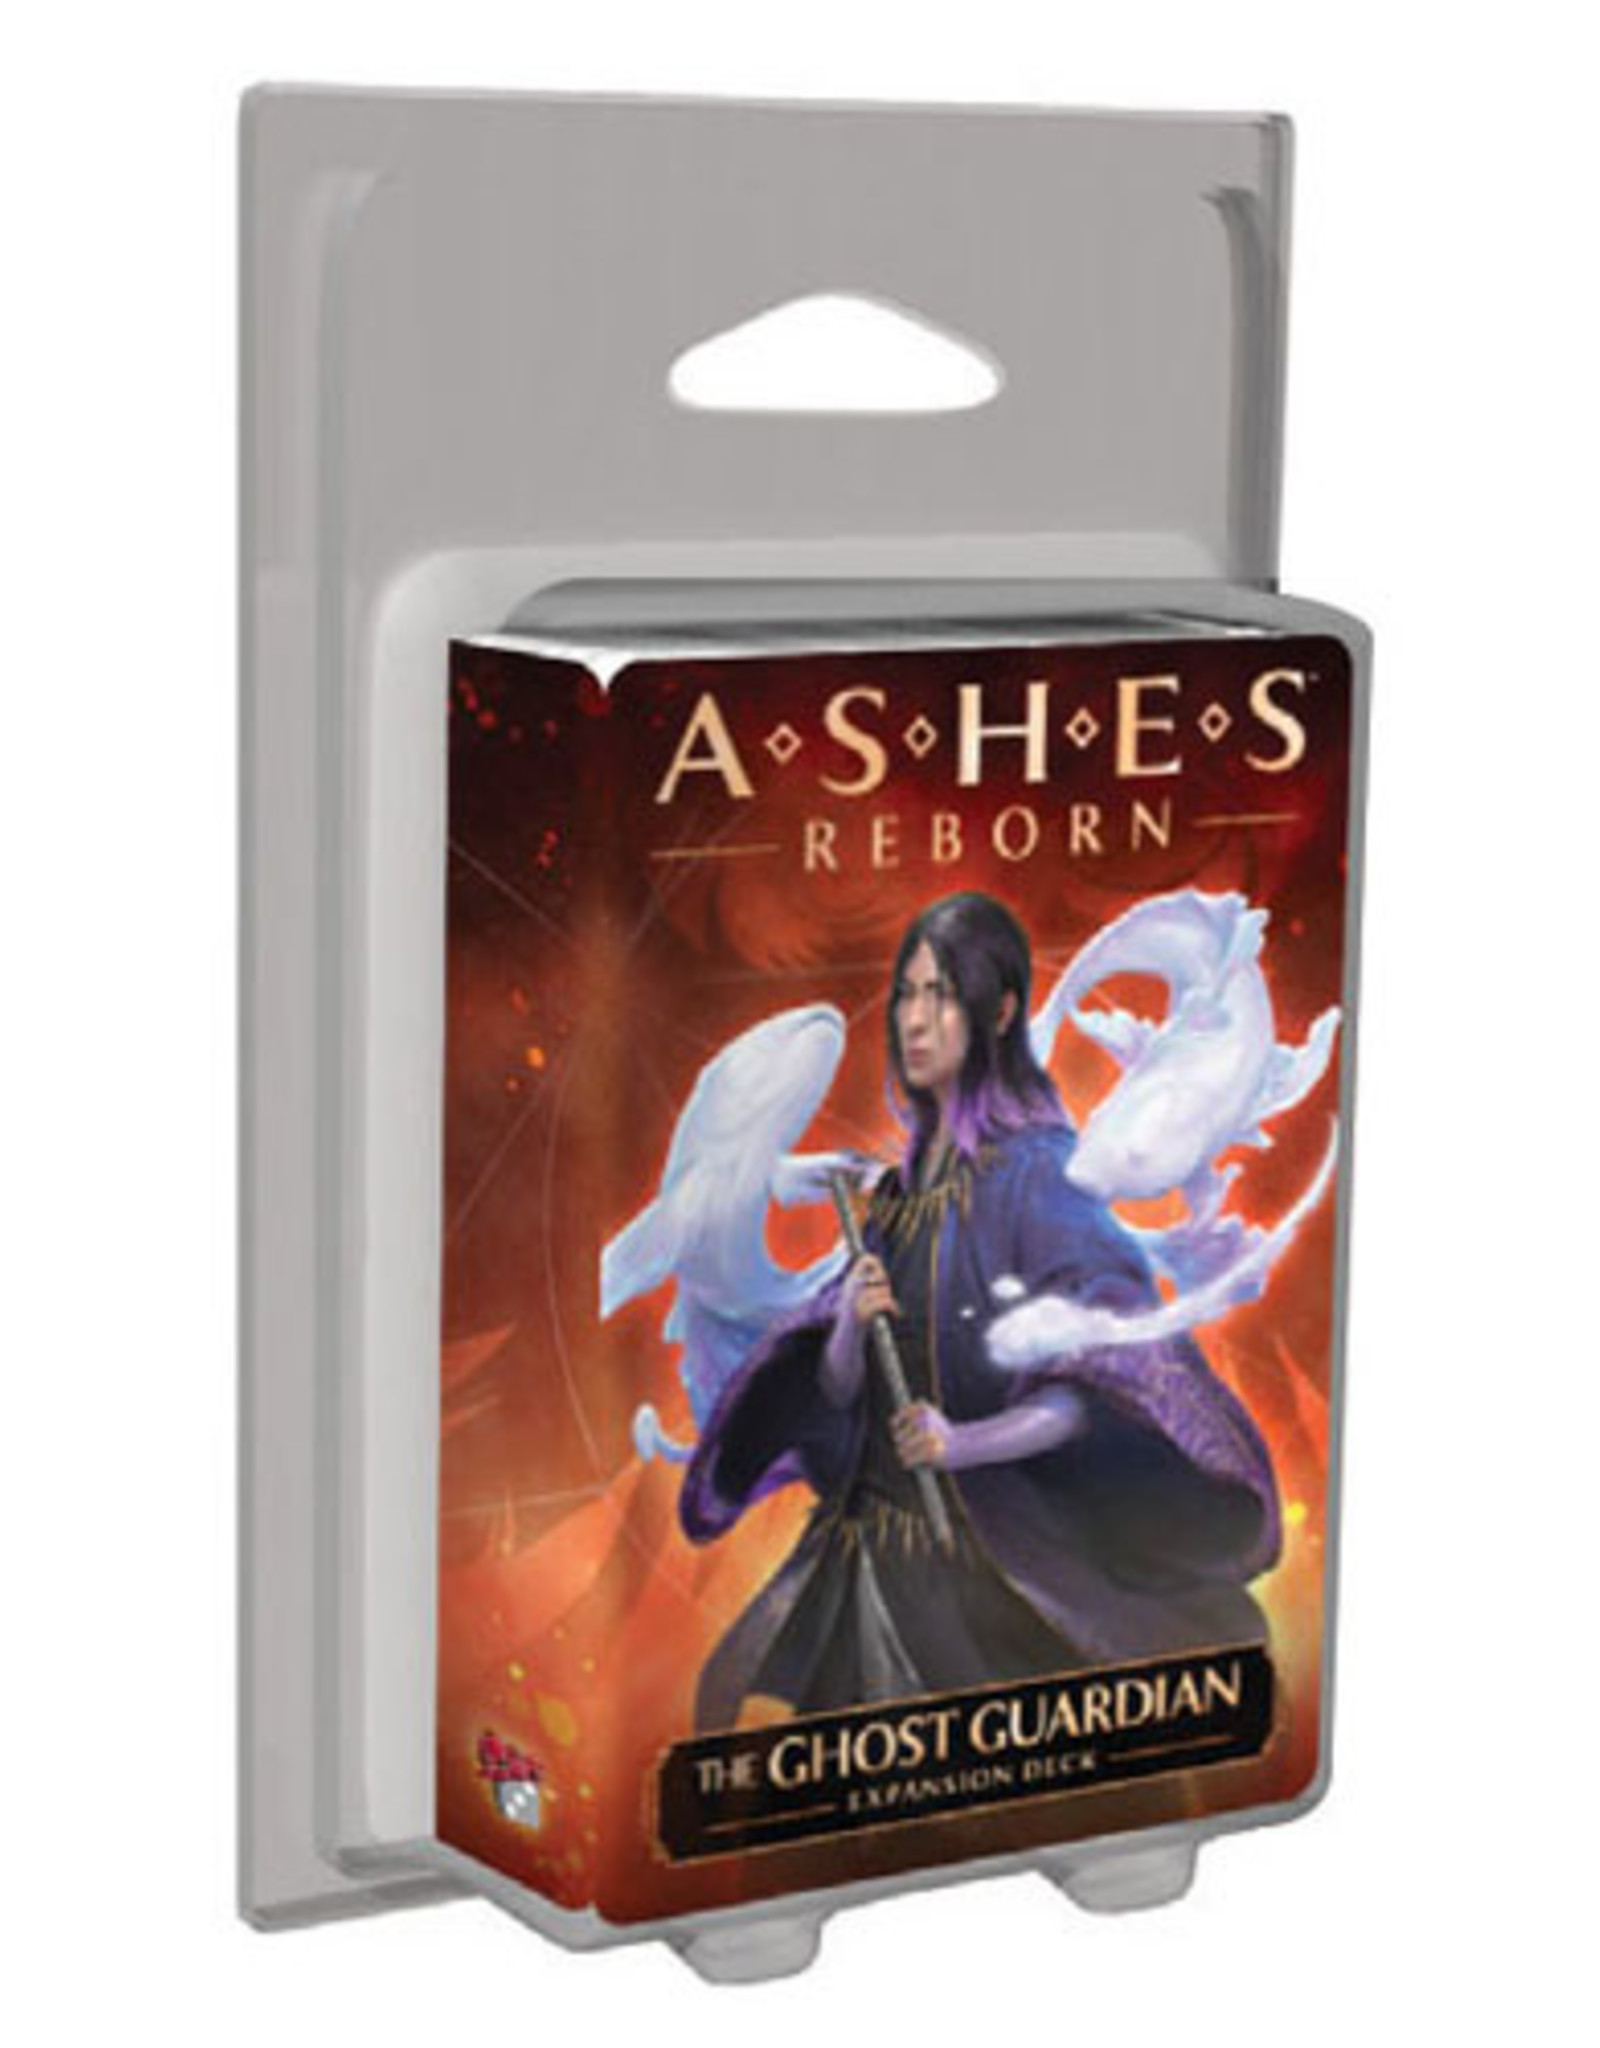 Ashes Reborn The Ghost Guardian